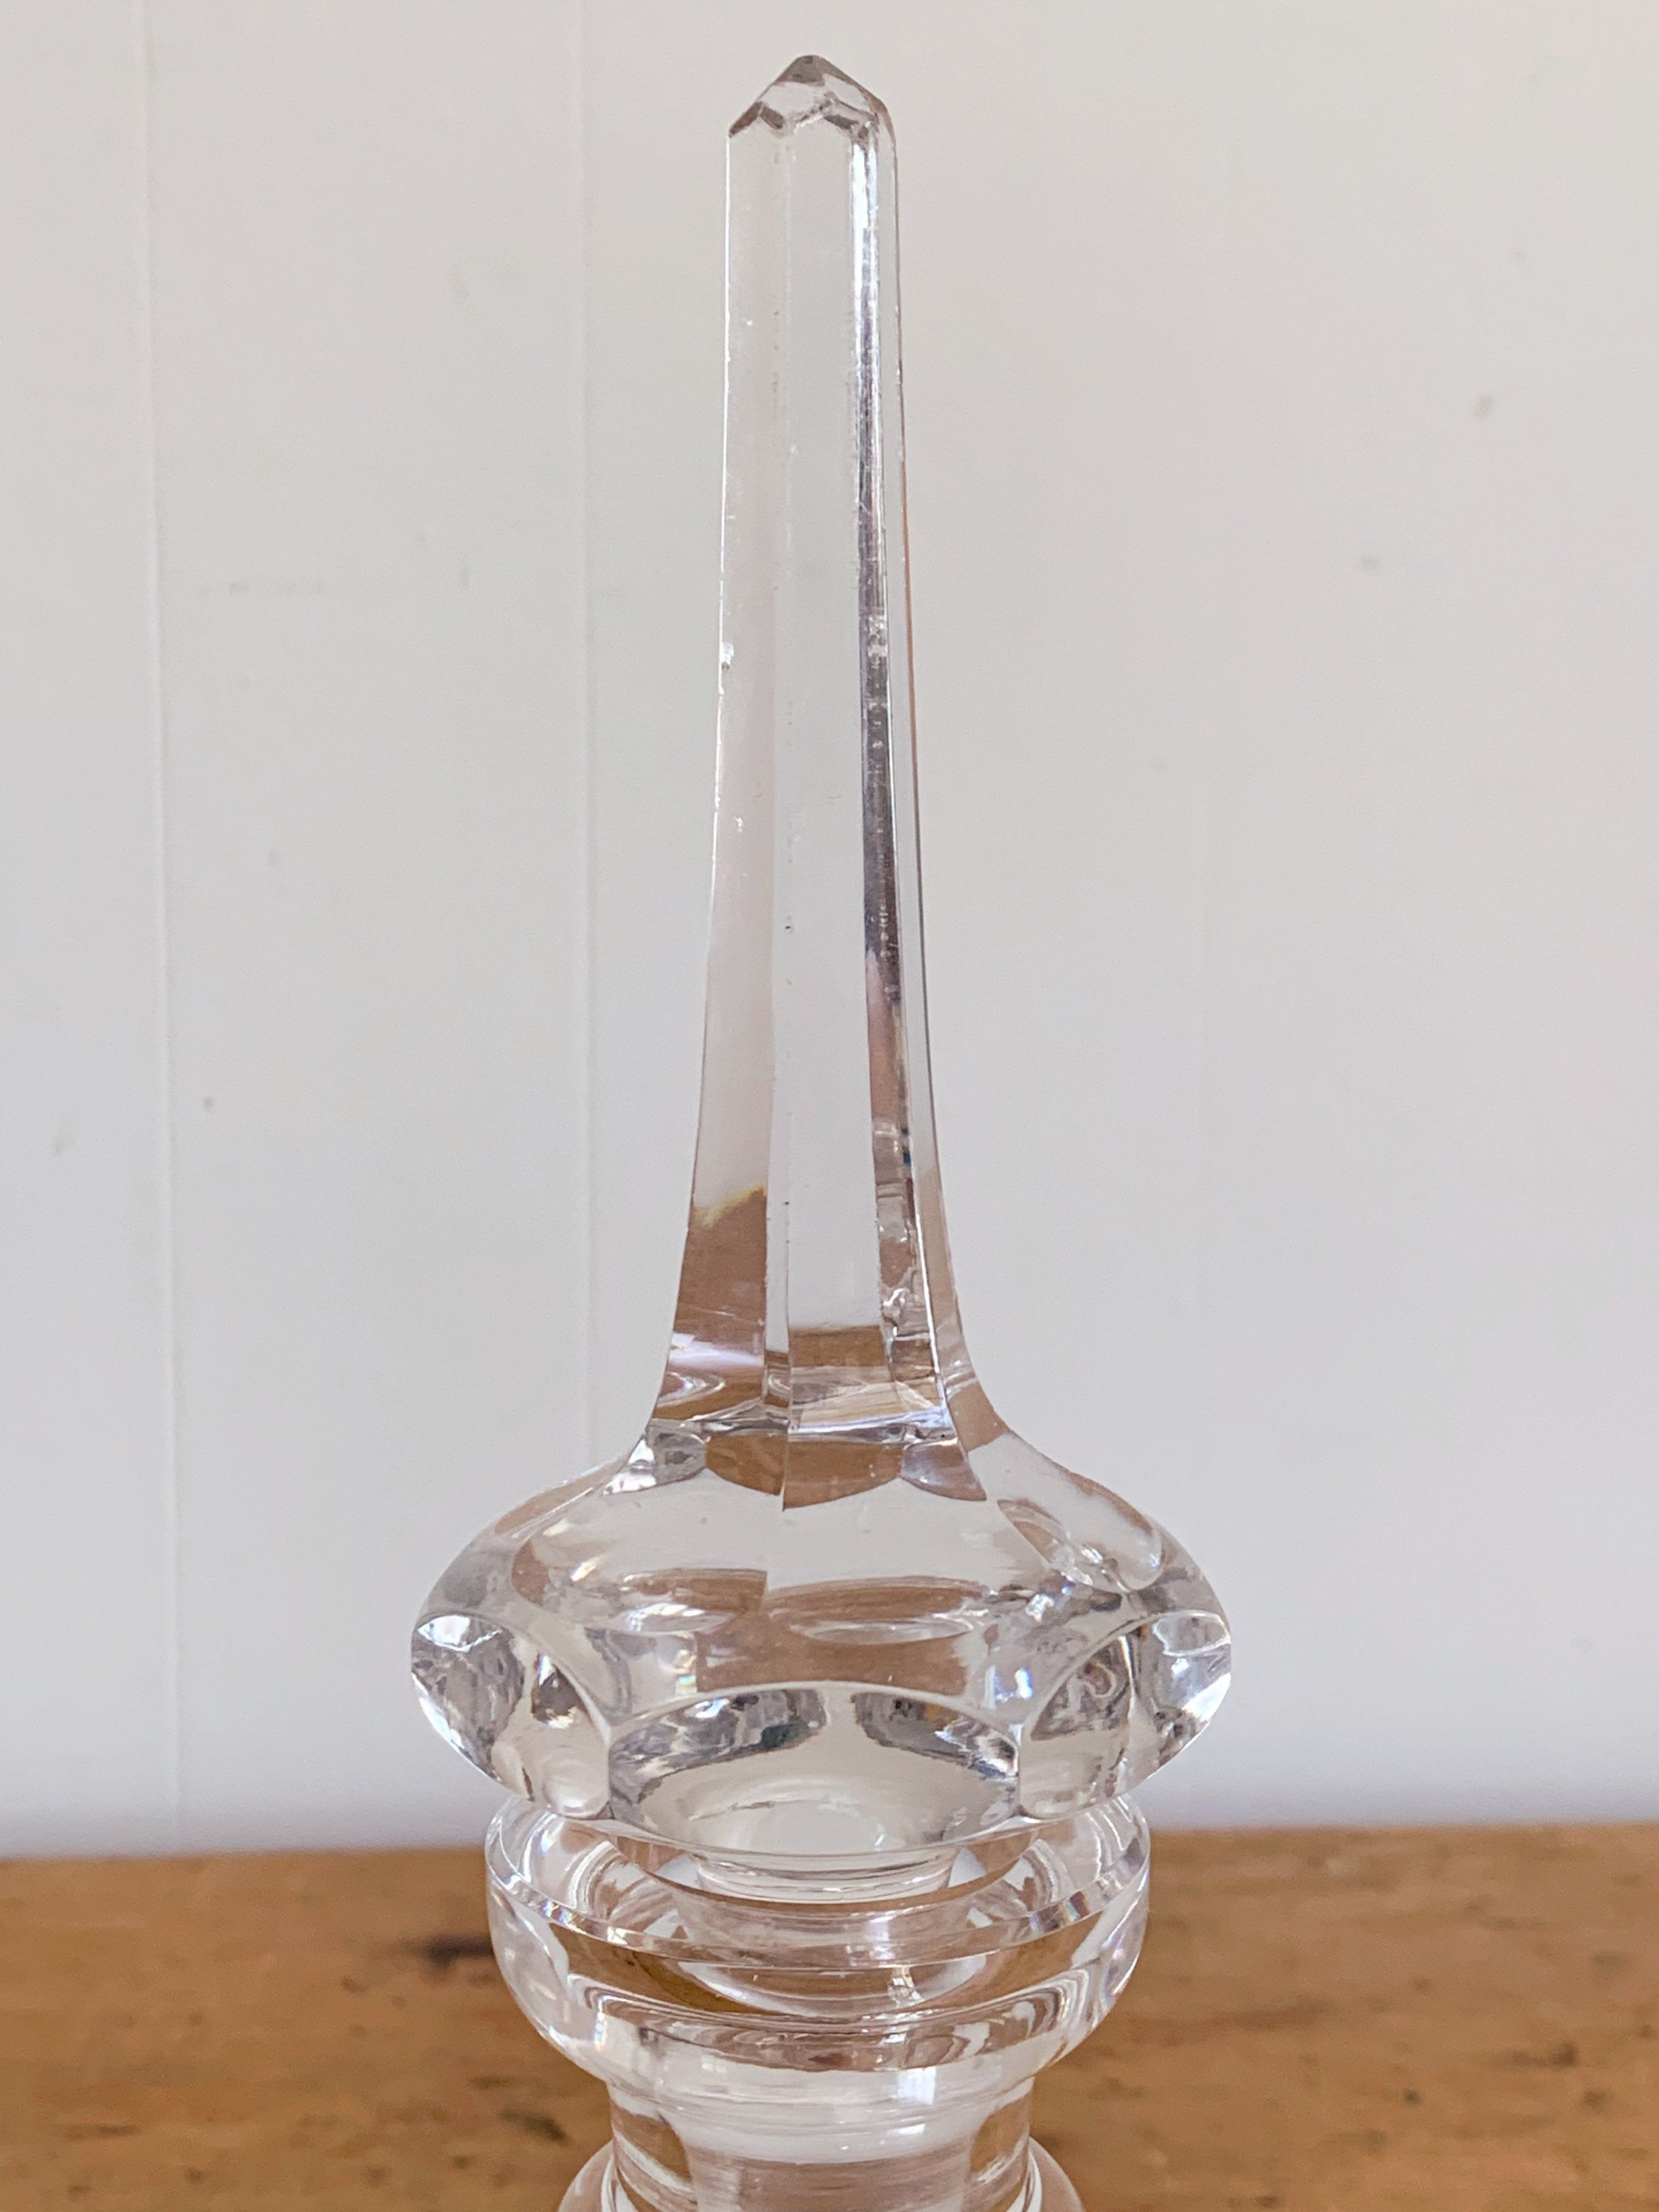 Antique 19th Century Rare Bohemian Cut Crystal Glass Decanter with Tall Stopper | Vintage Barware Bar Cart Decor